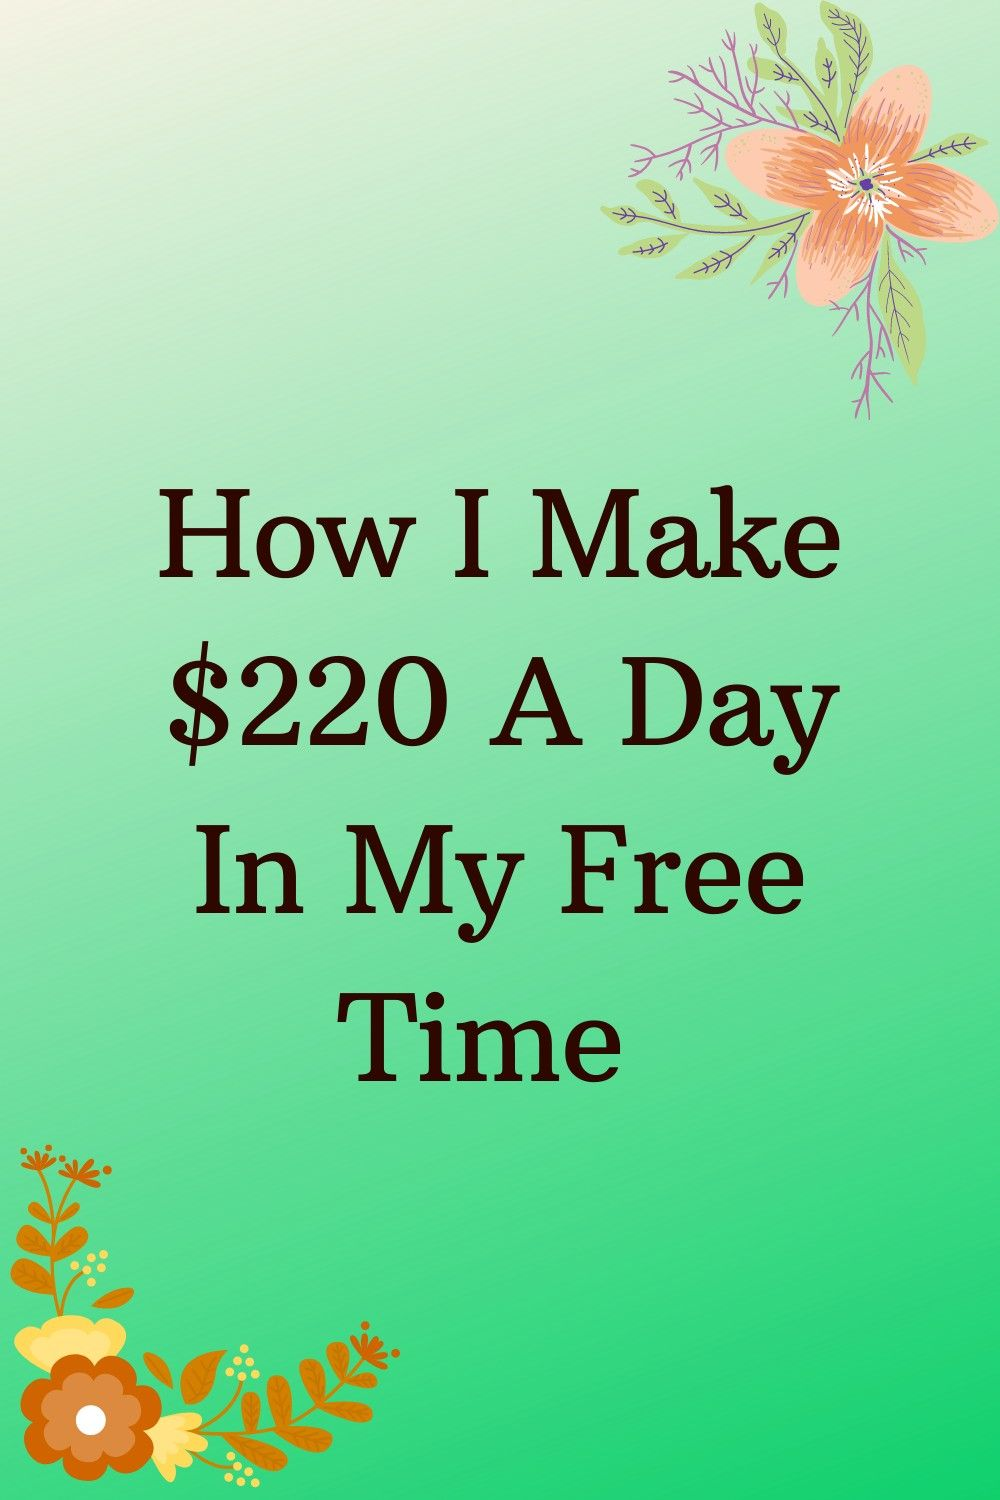 How I Make $220 A Day In My Free Time